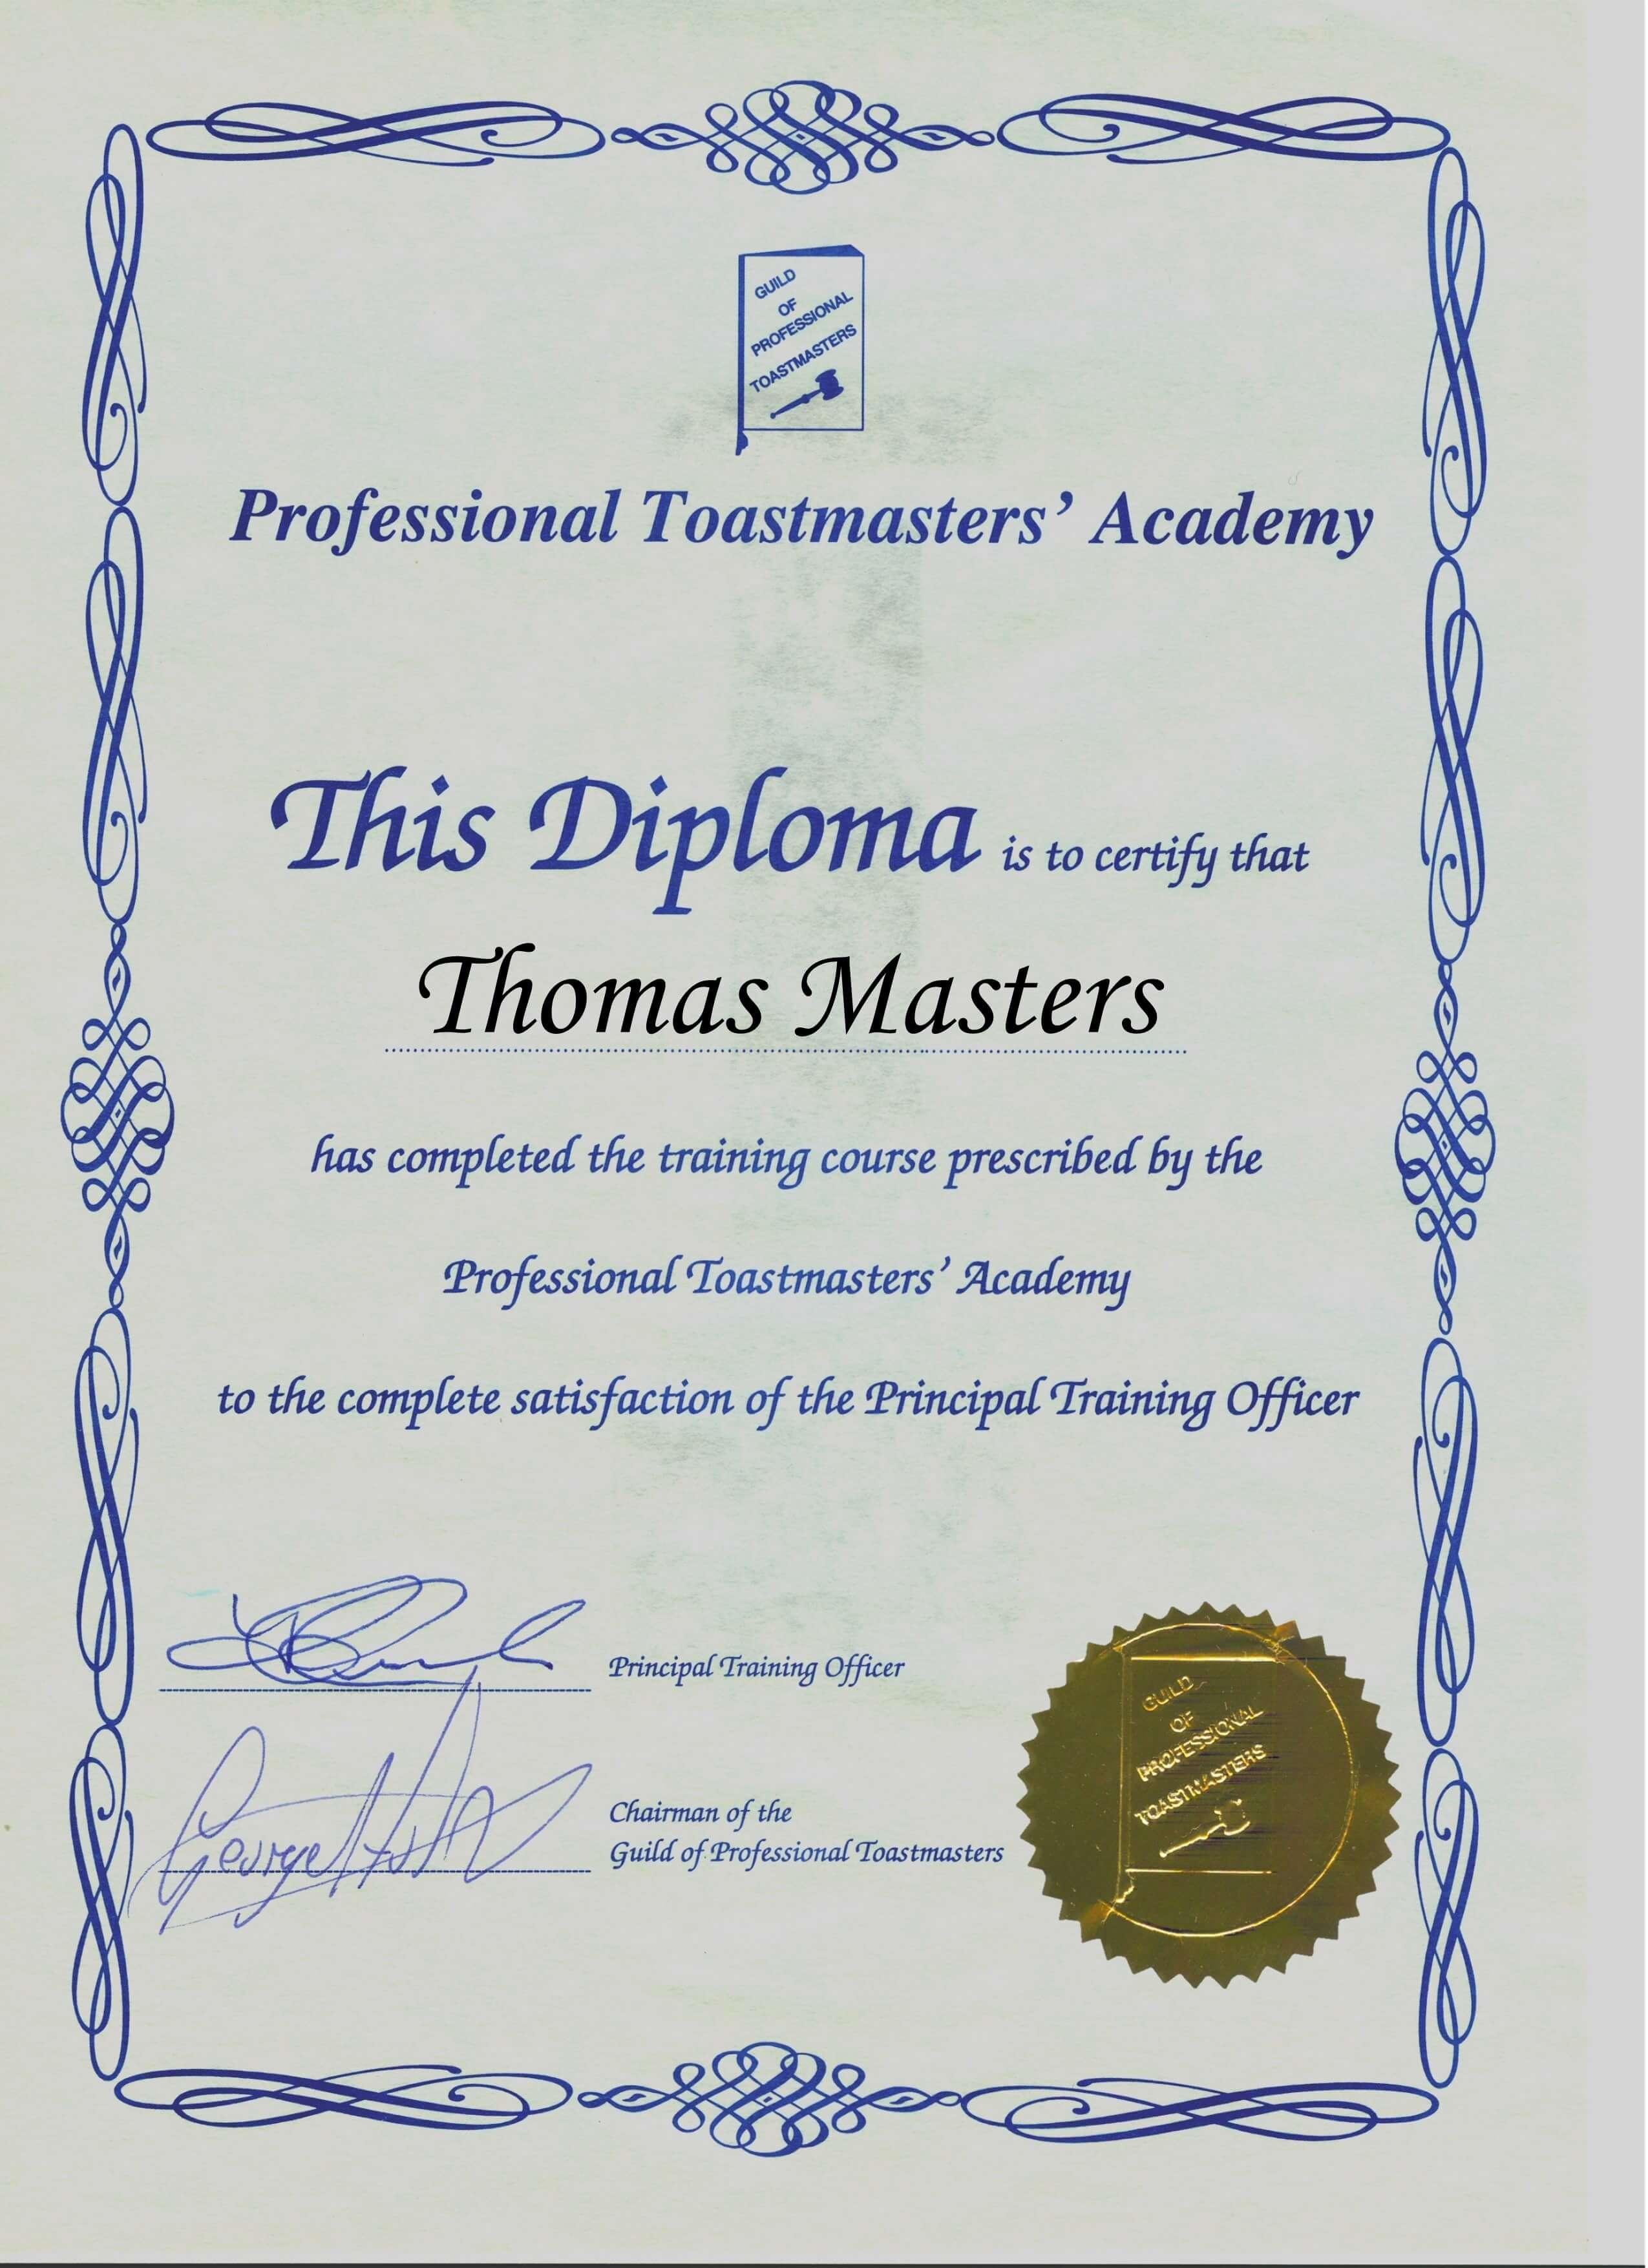 Qualify as a Professional Toastmaster with the Guild of Professional Toastmasters